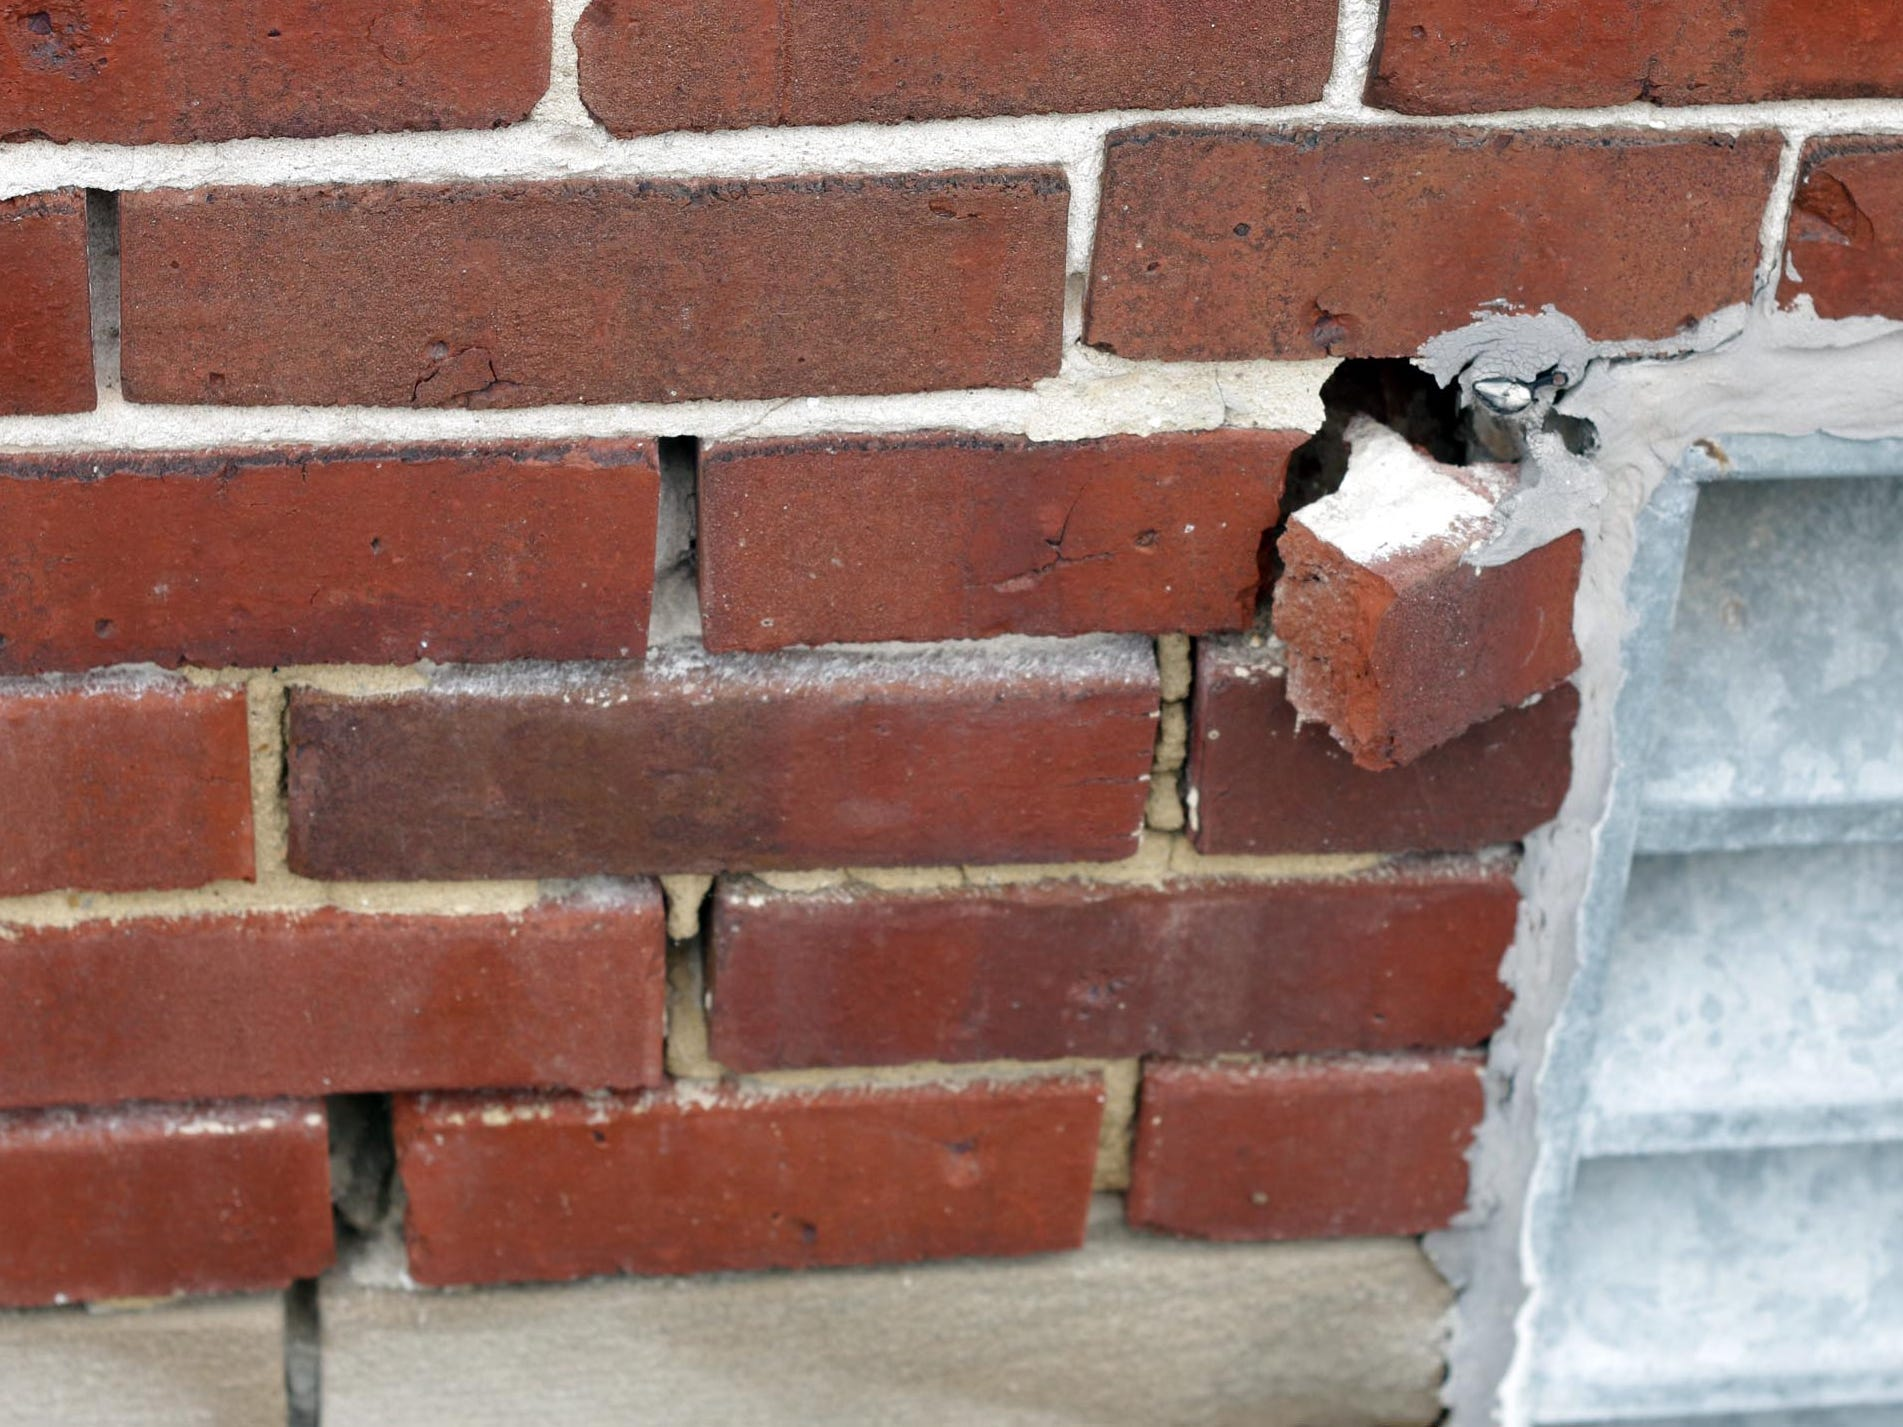 Bricks in need of tuck pointing as seen, Thursday October 2, 2014, at city hall in Sheboygan, Wis. In 1915, building was to cost $74,584. Another $75,000 was used in finally completing it.  Today the 2018 renovations have a budget of 10.5 million dollars.